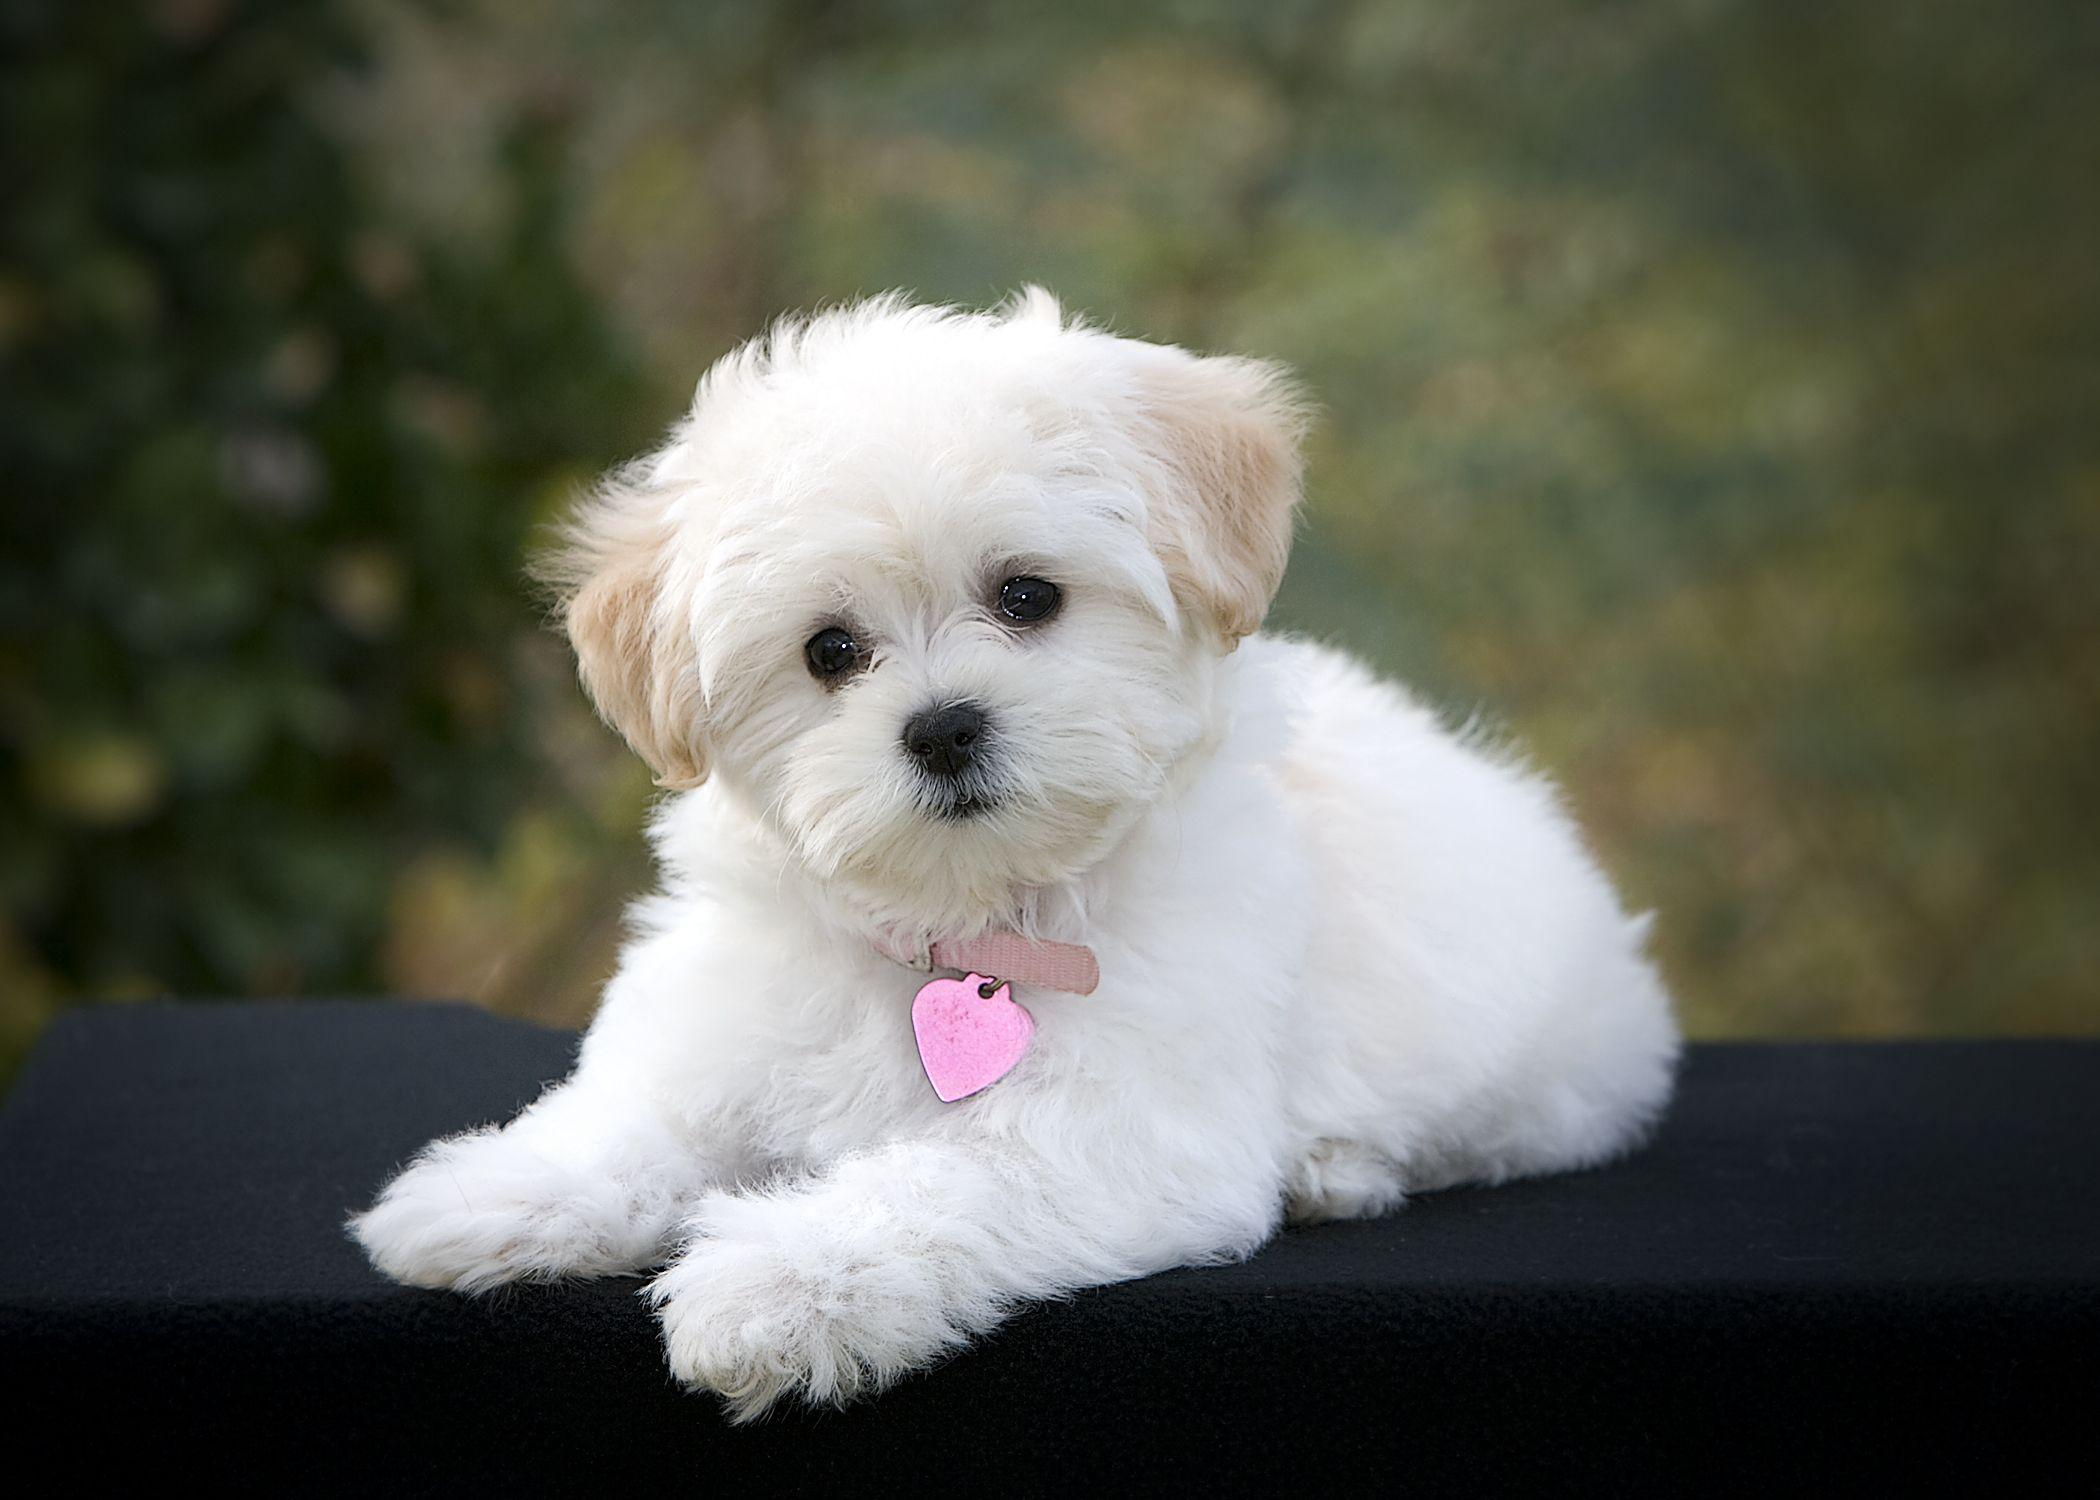 Can We Guess Your Dog's Name? | Maltipoo, Dog and Dog breeds